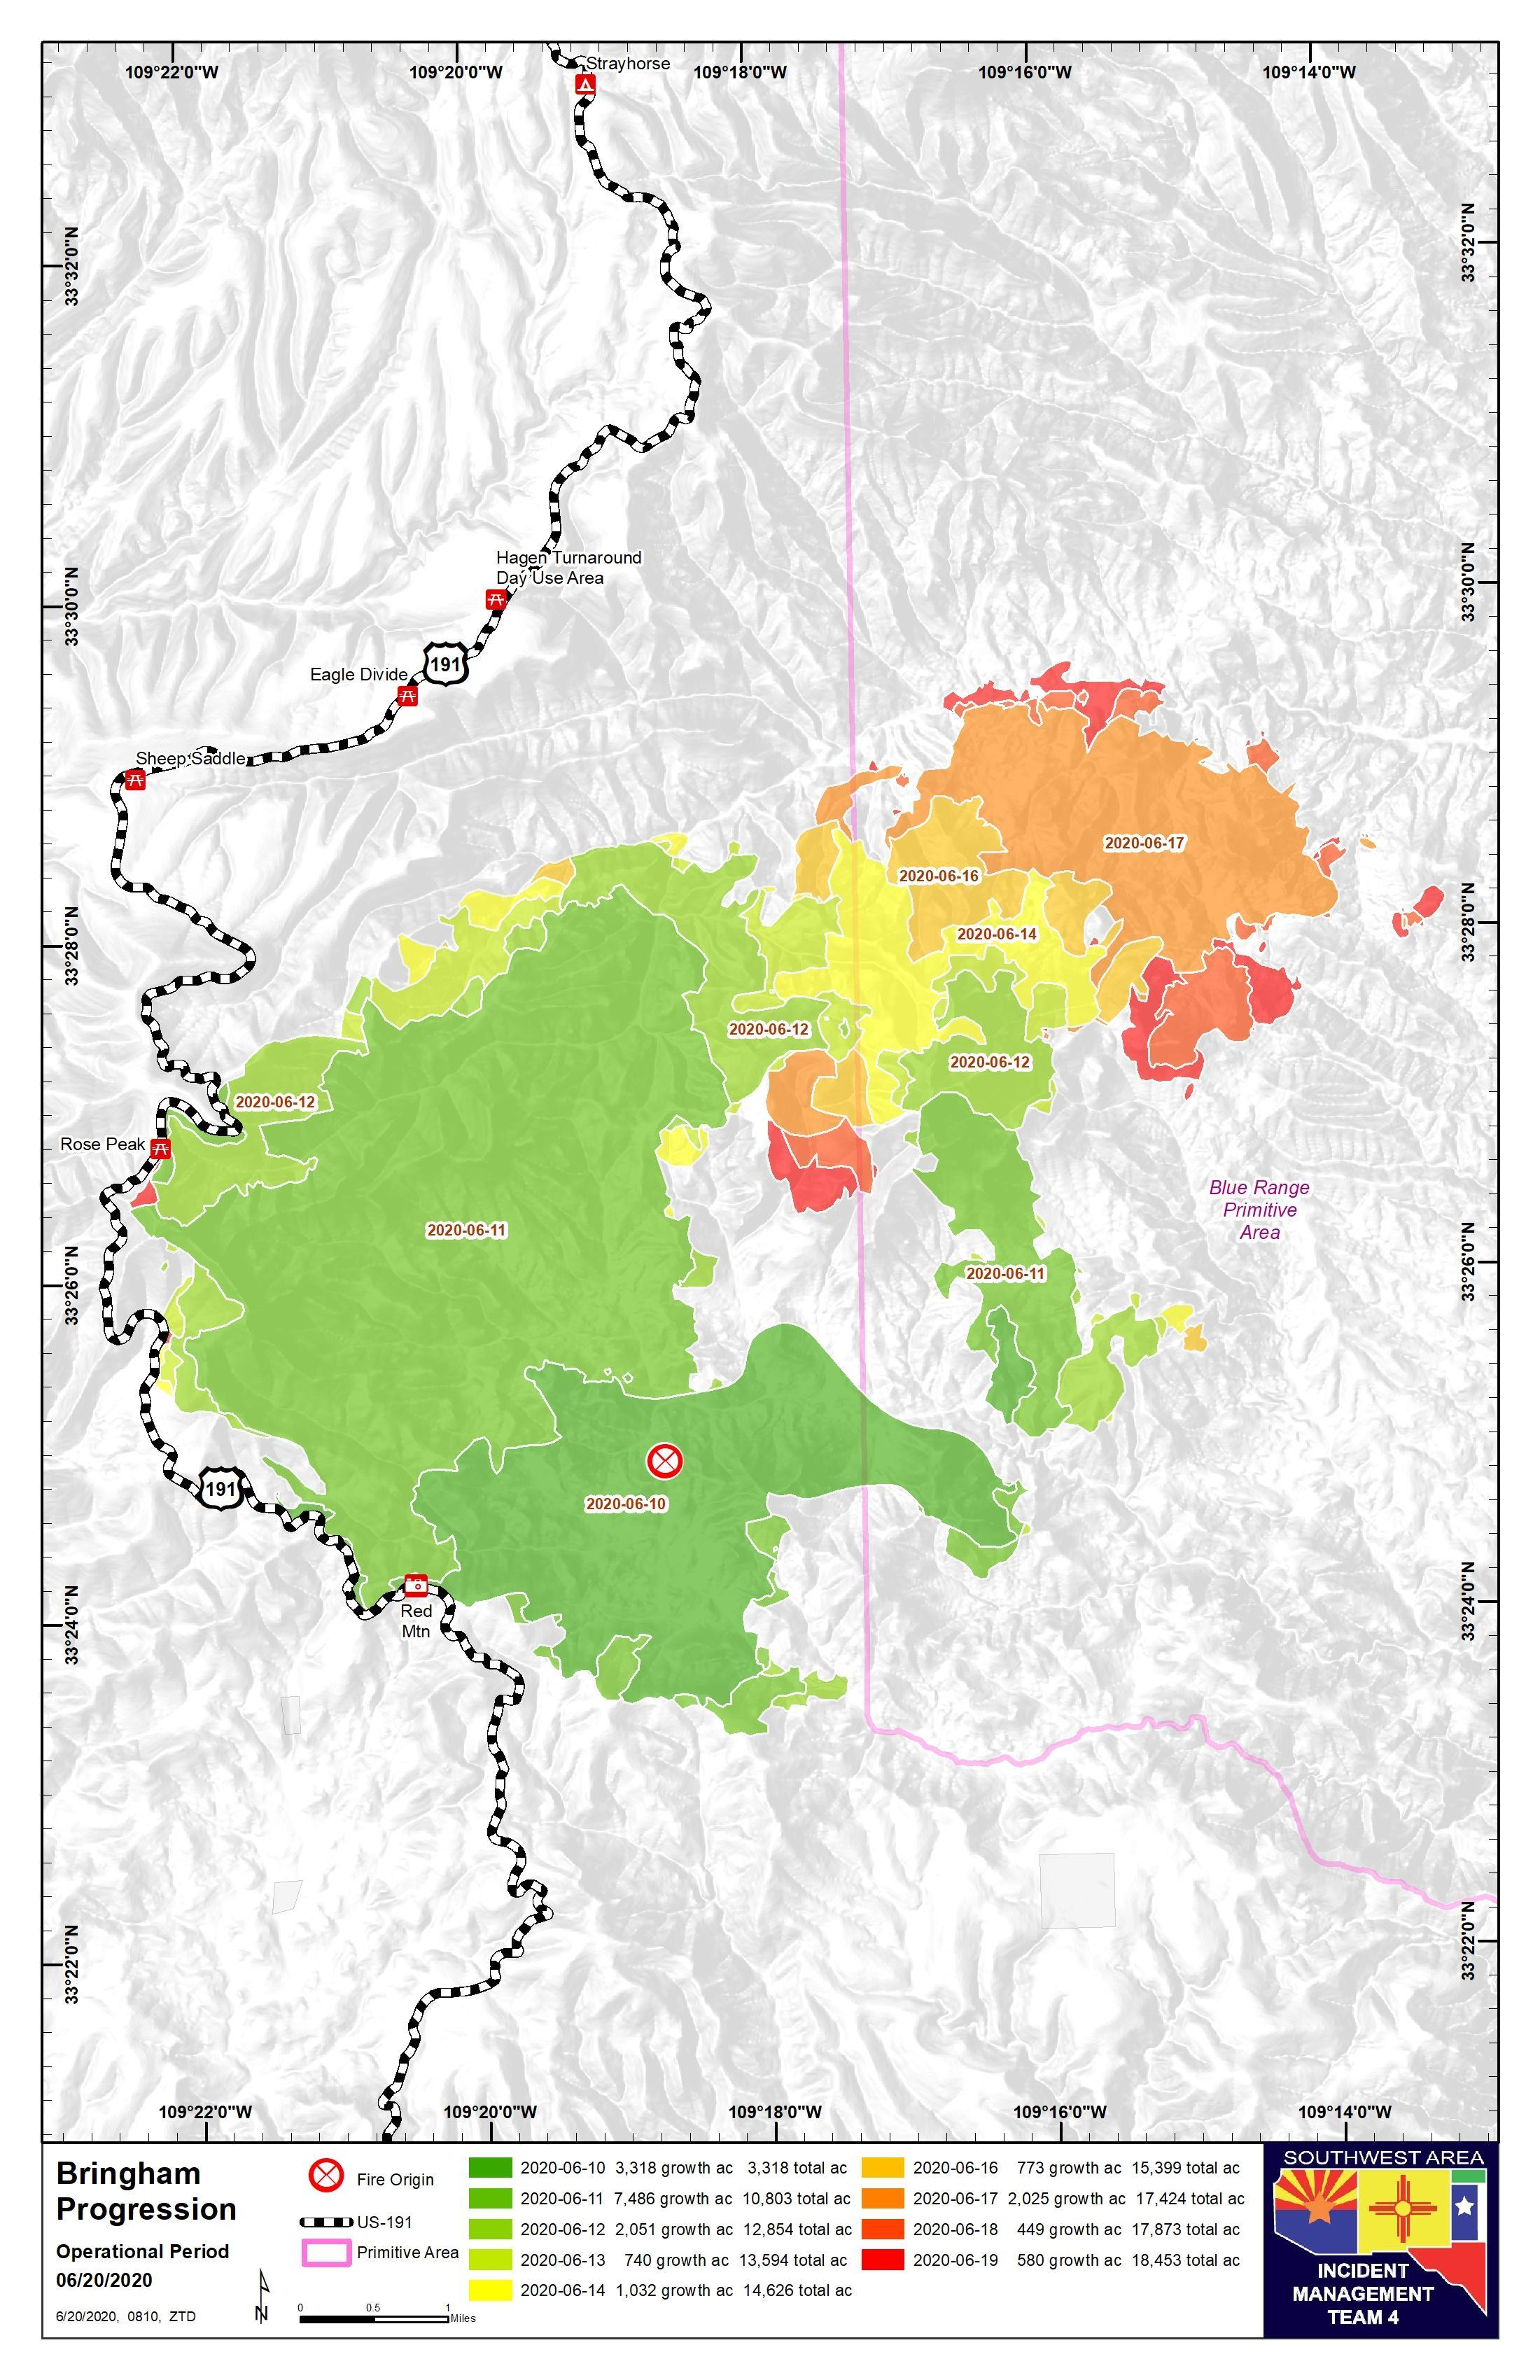 June 21 Bringham Fire Progression Map